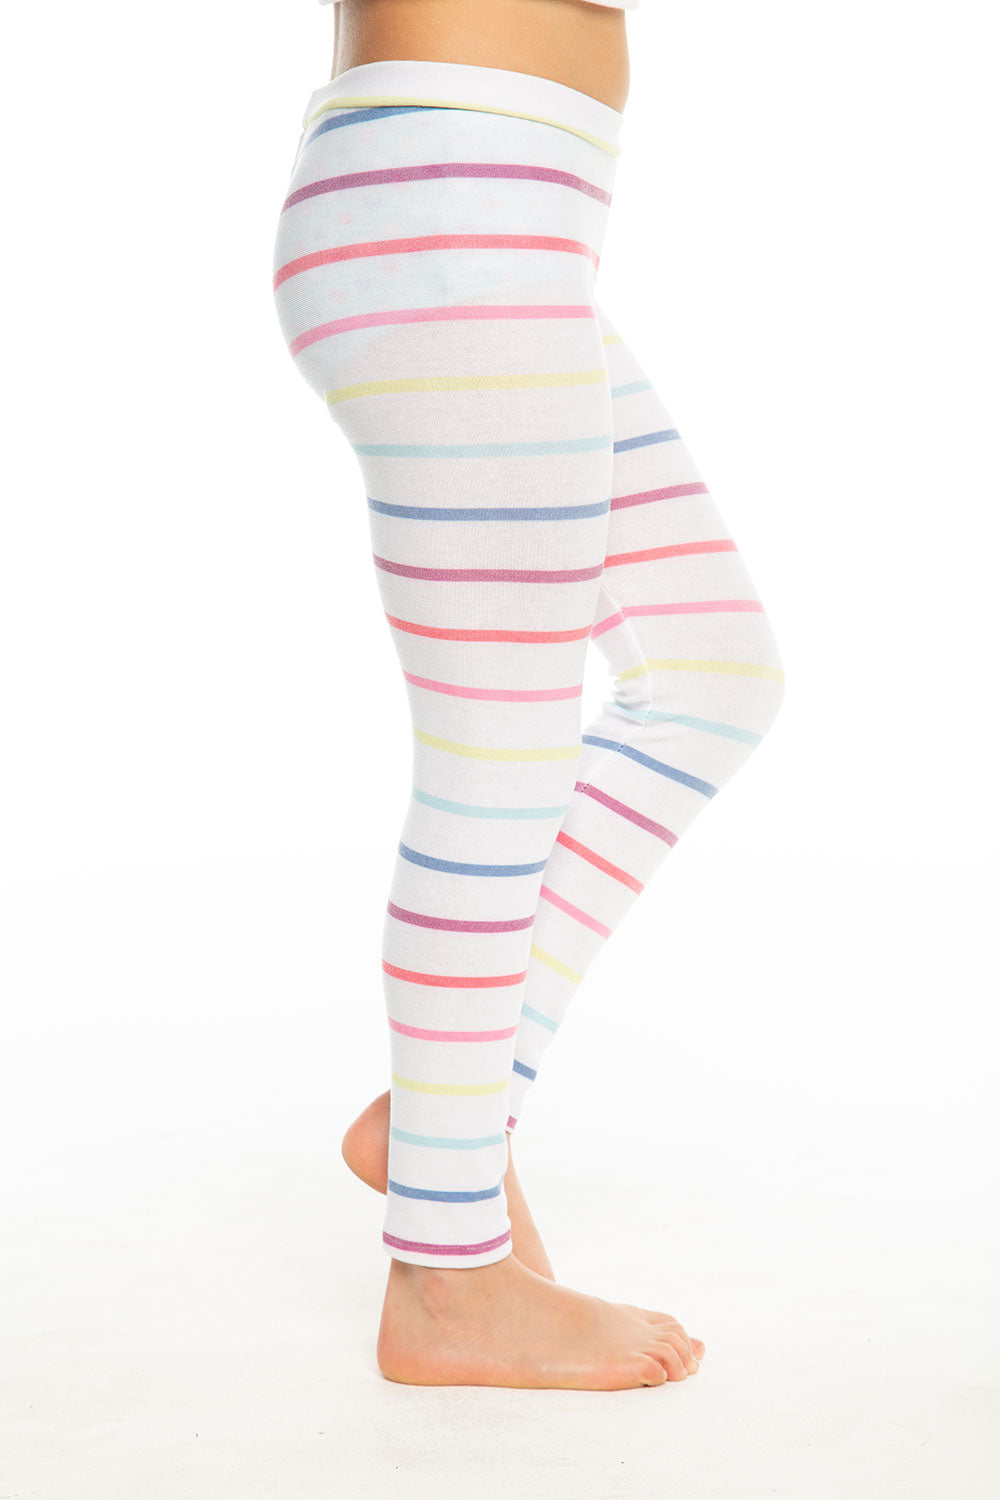 4e18e795f60f9 Cozy Knit Classic Legging, Girls, chaserbrand.com,chaser clothing,chaser  apparel